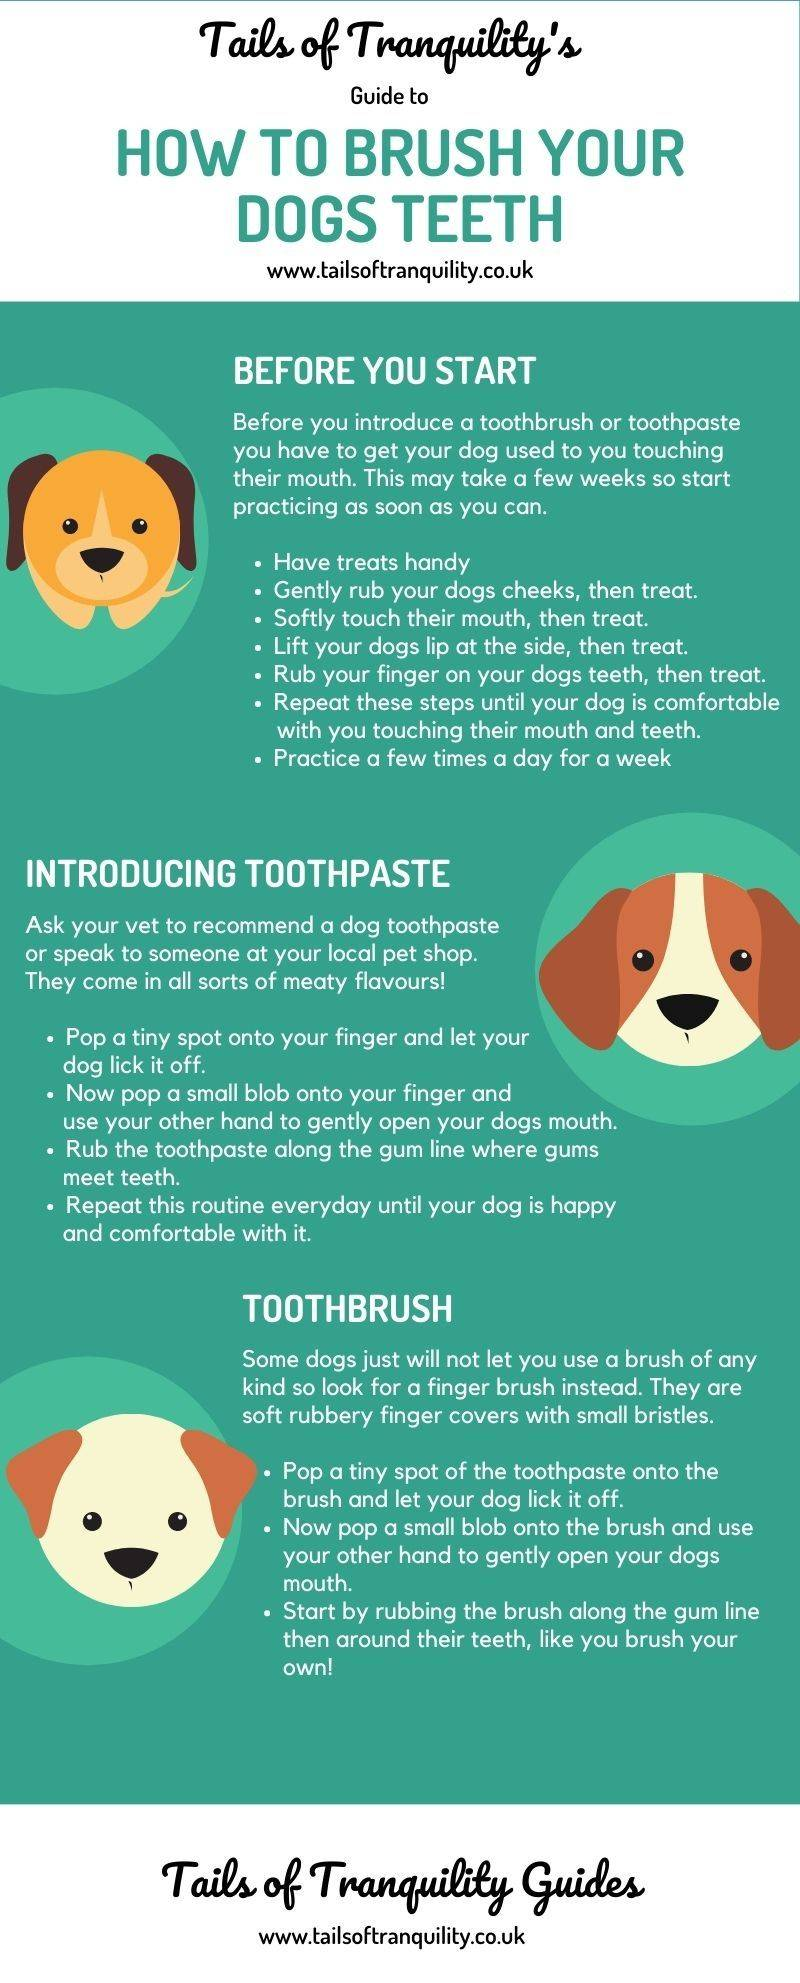 Guide to brushing your dogs teeth